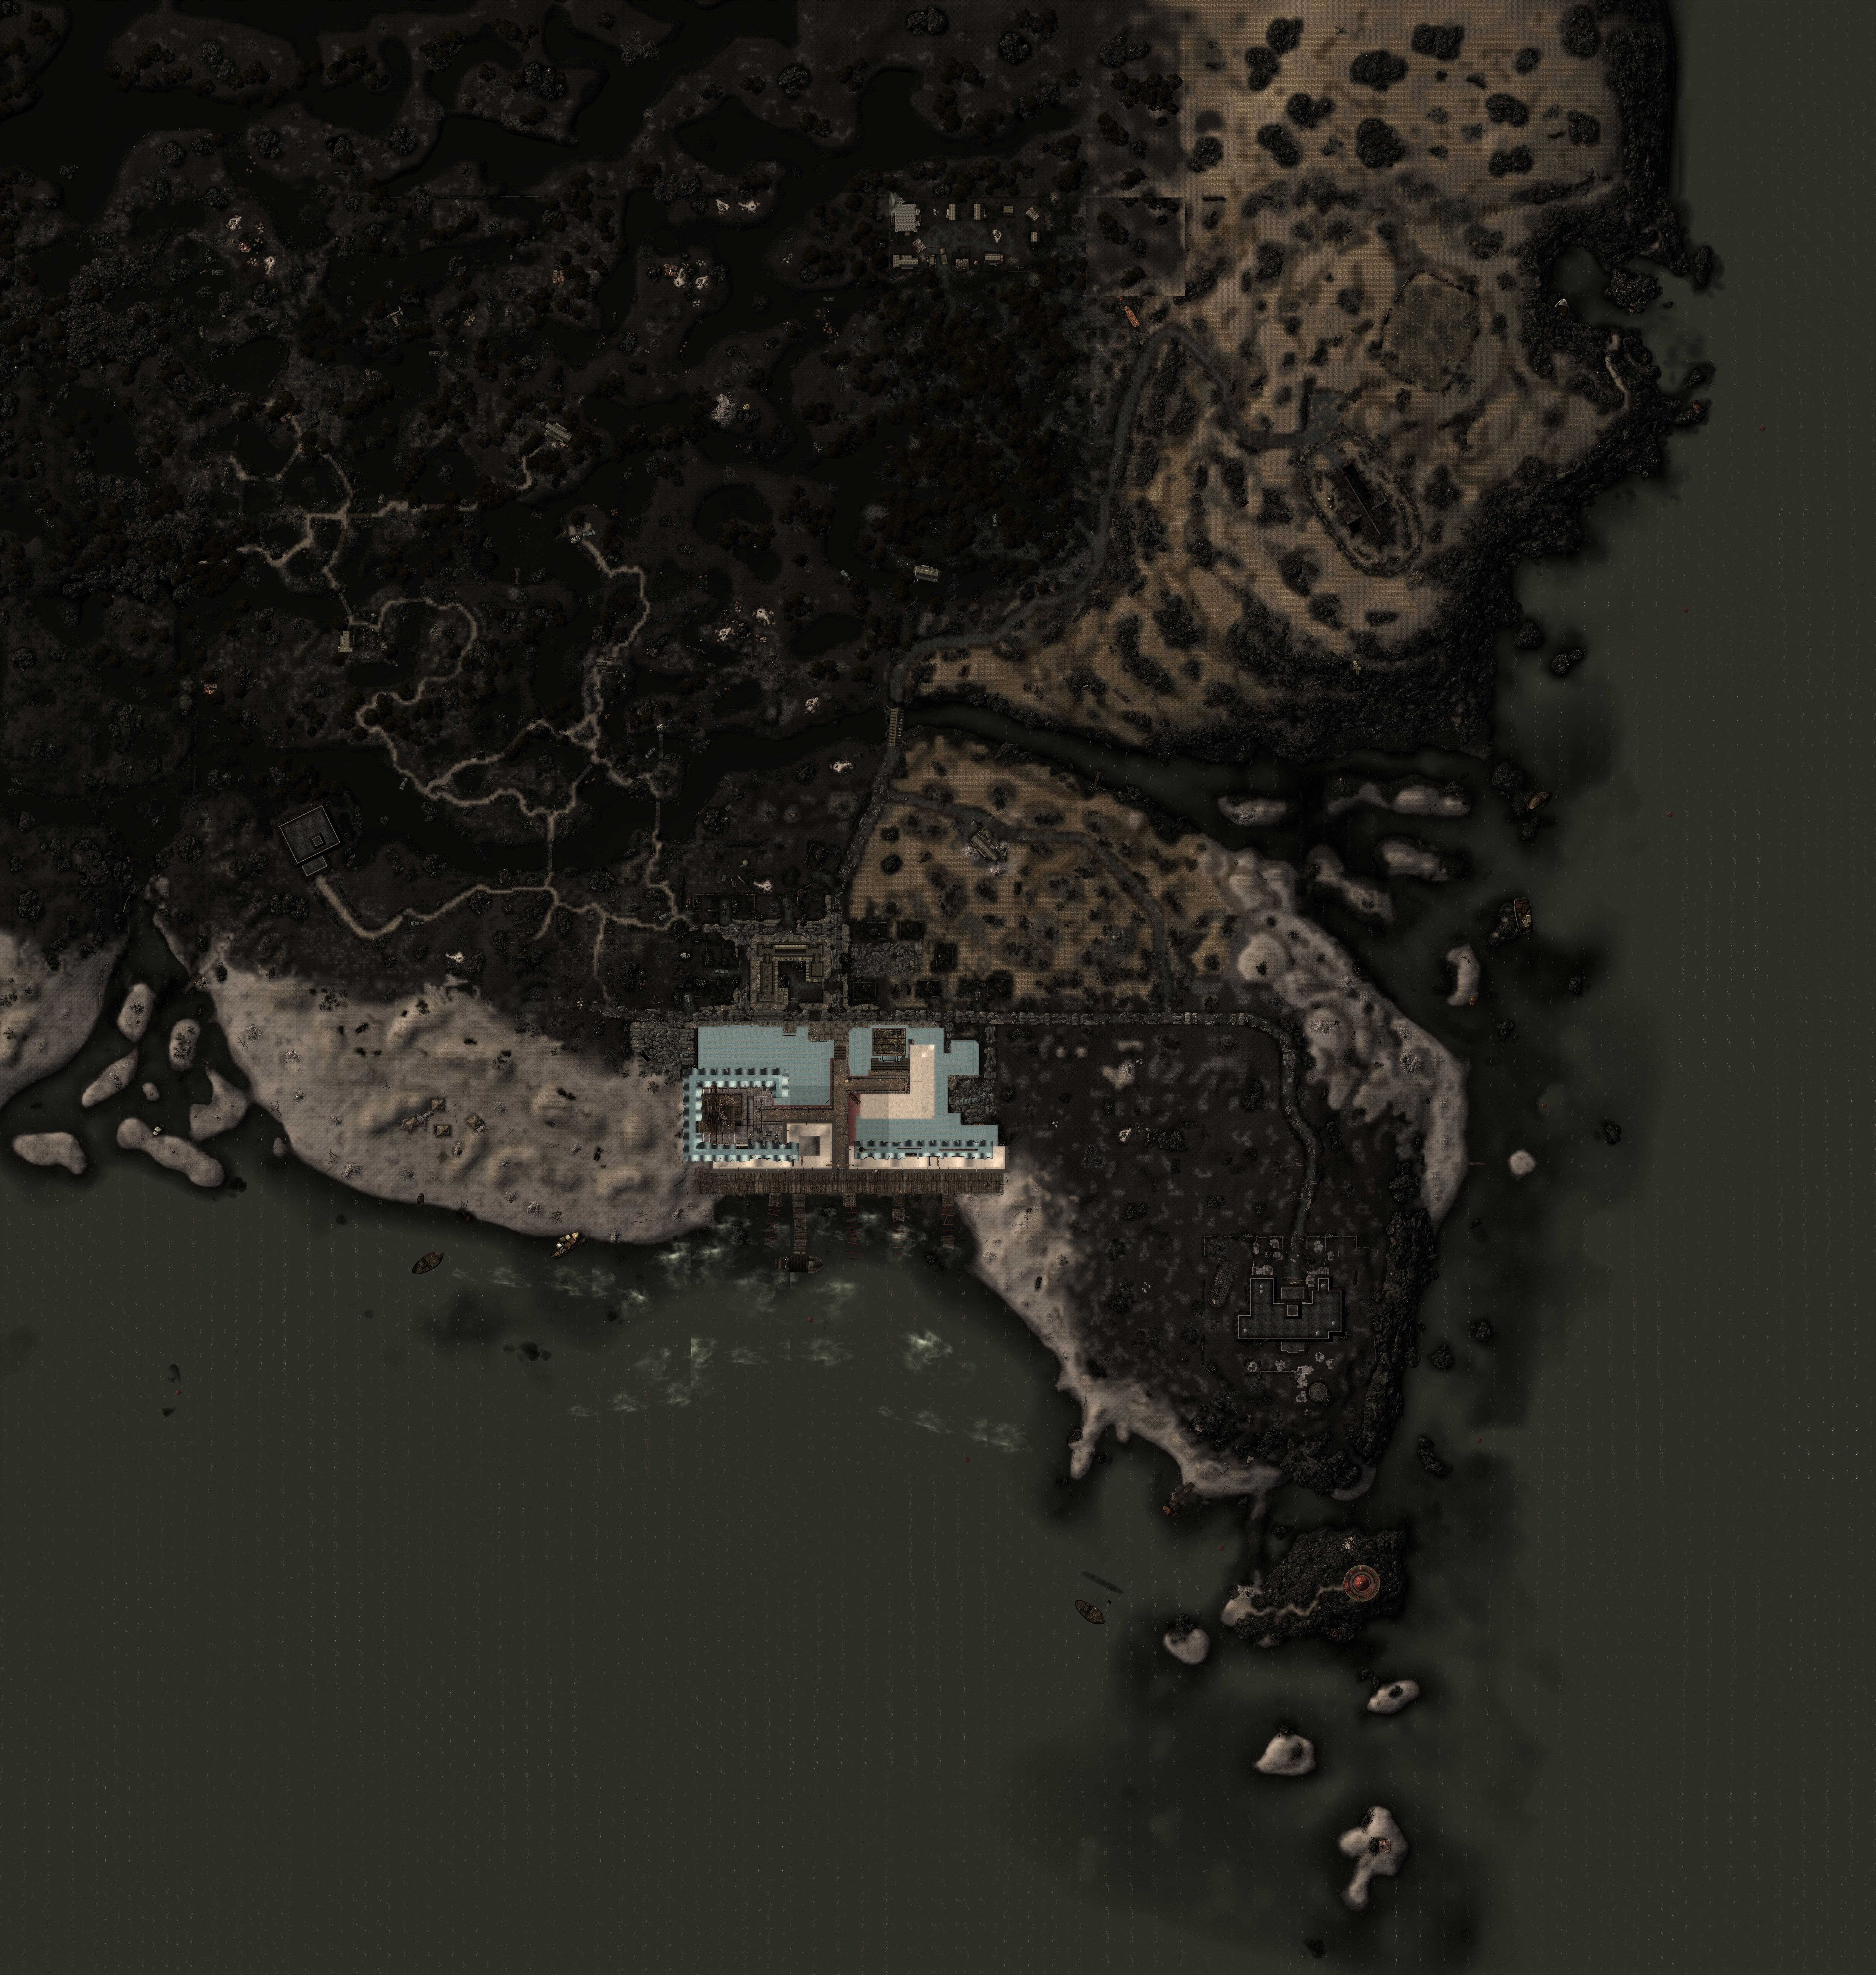 Is There An Image Of The Full Local Map For The Wasteland Of Any